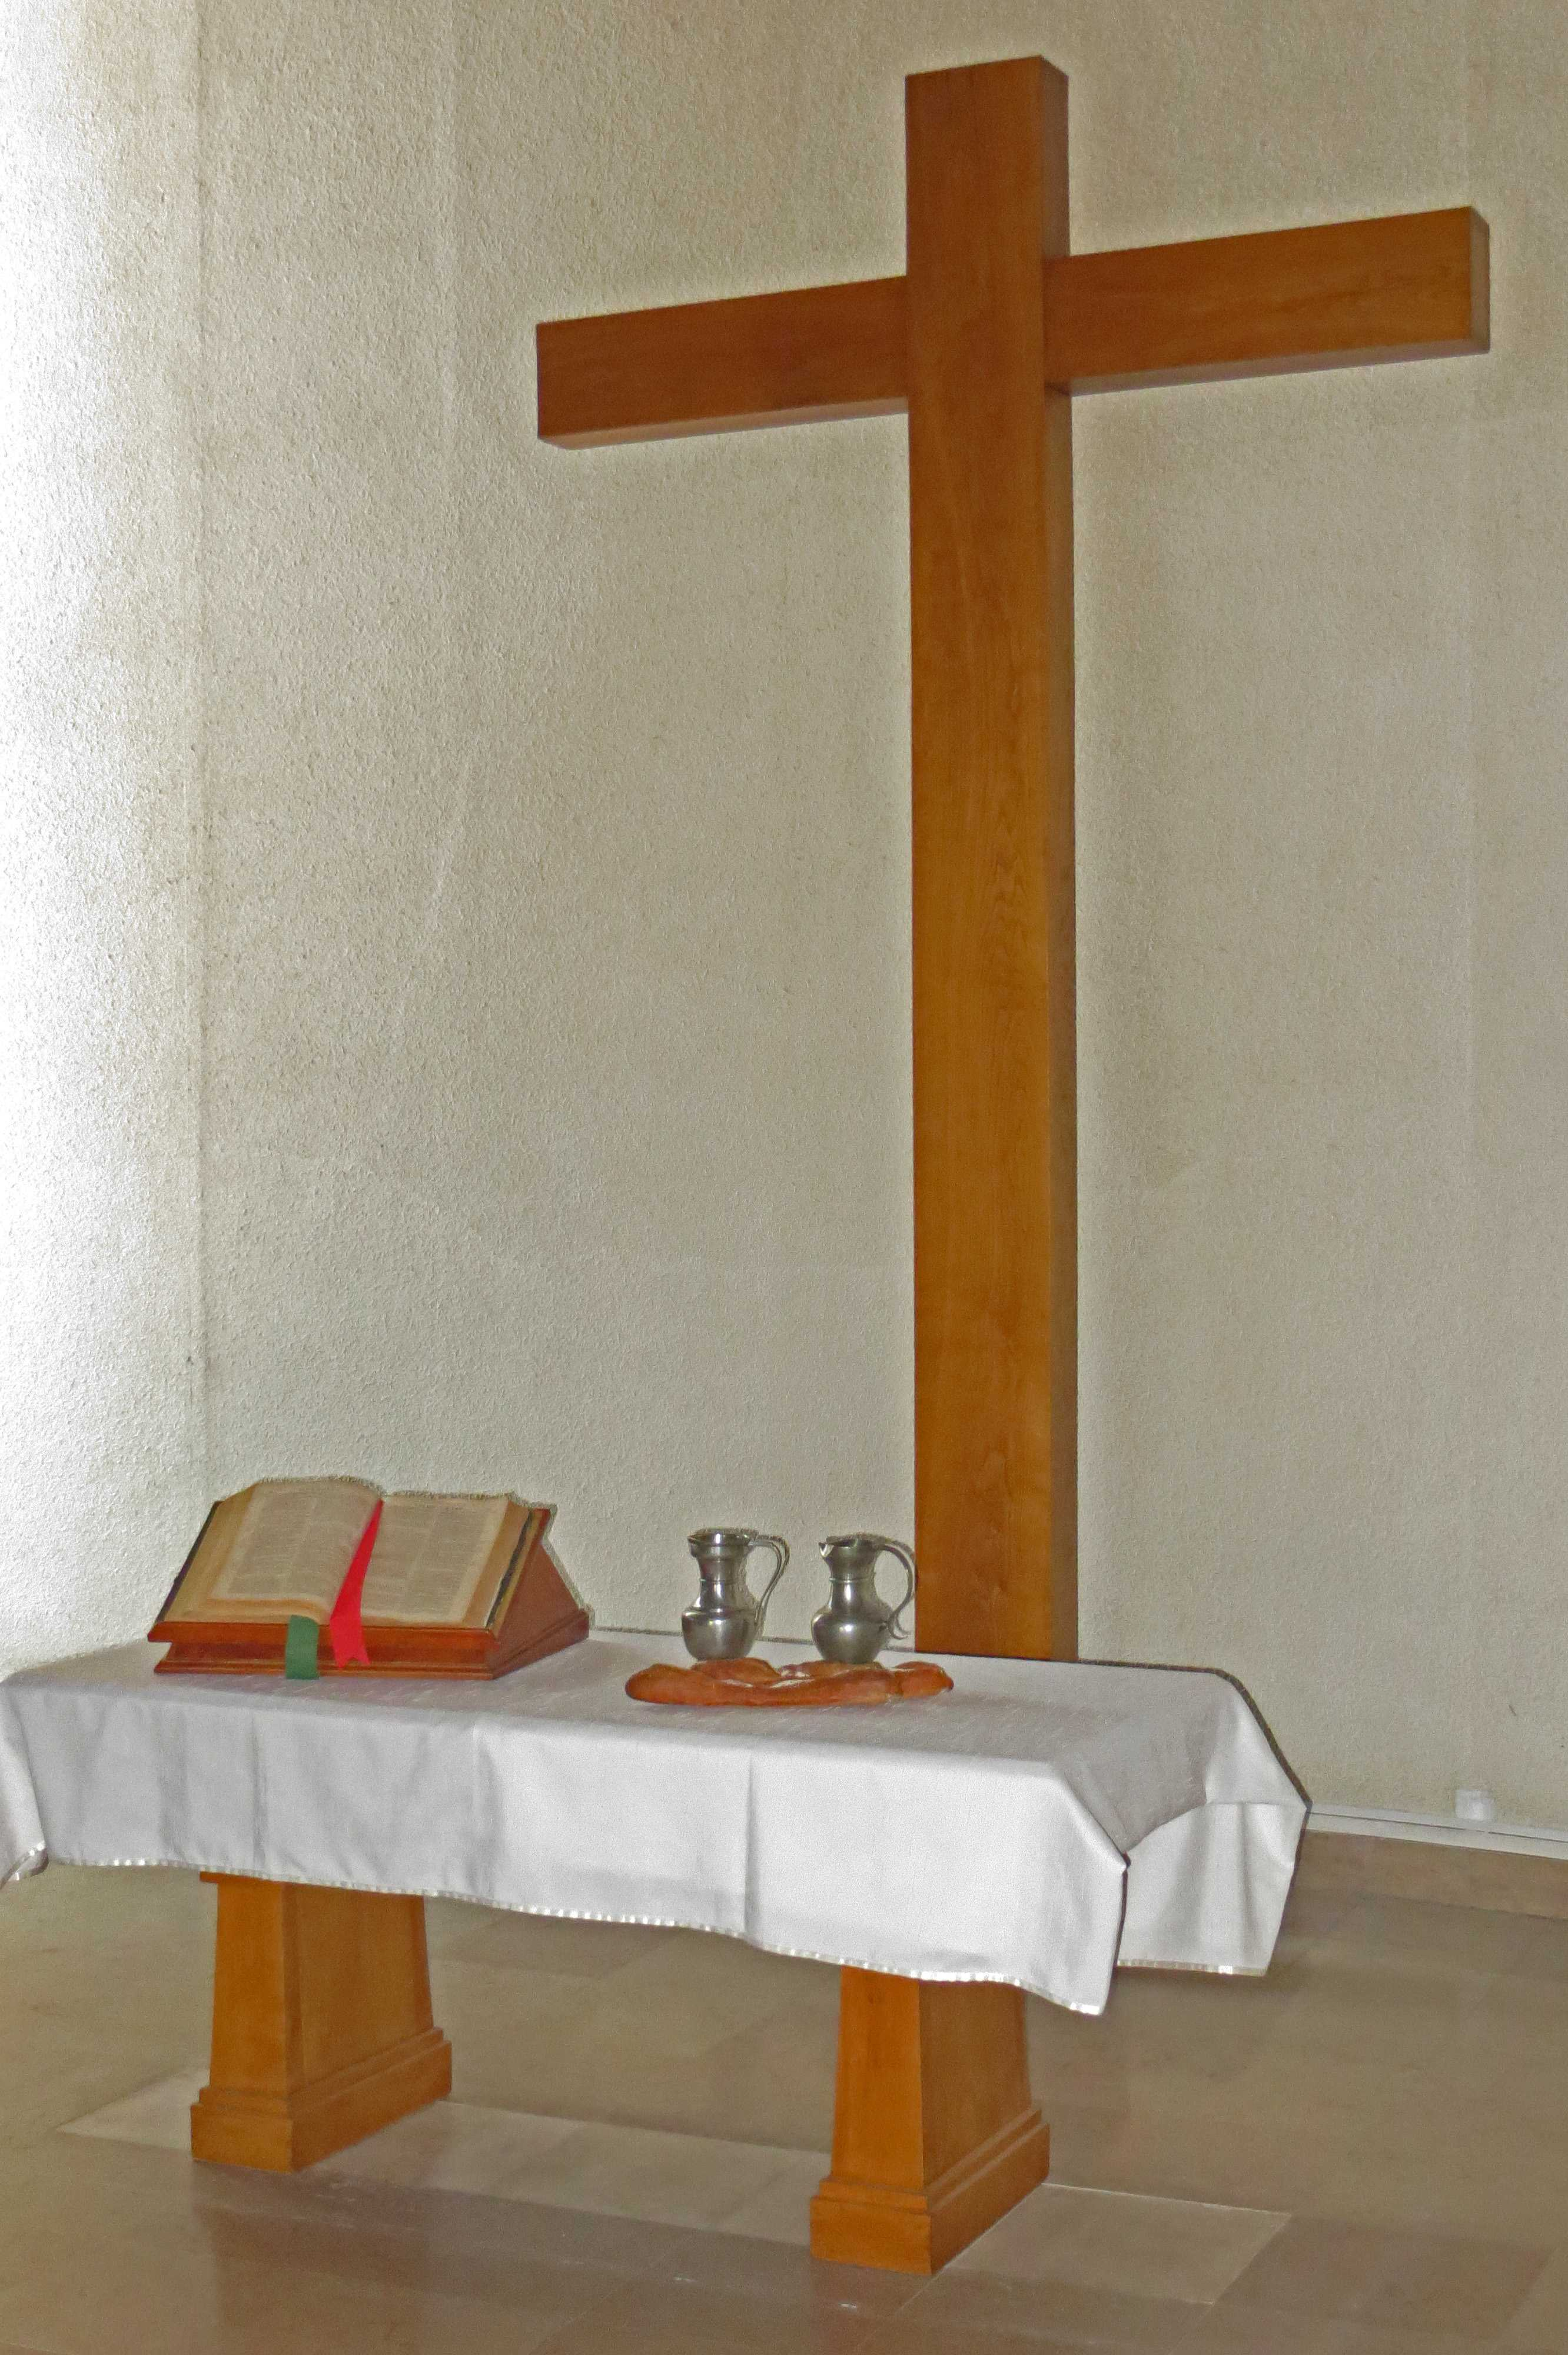 La croix et la table de communion du temple